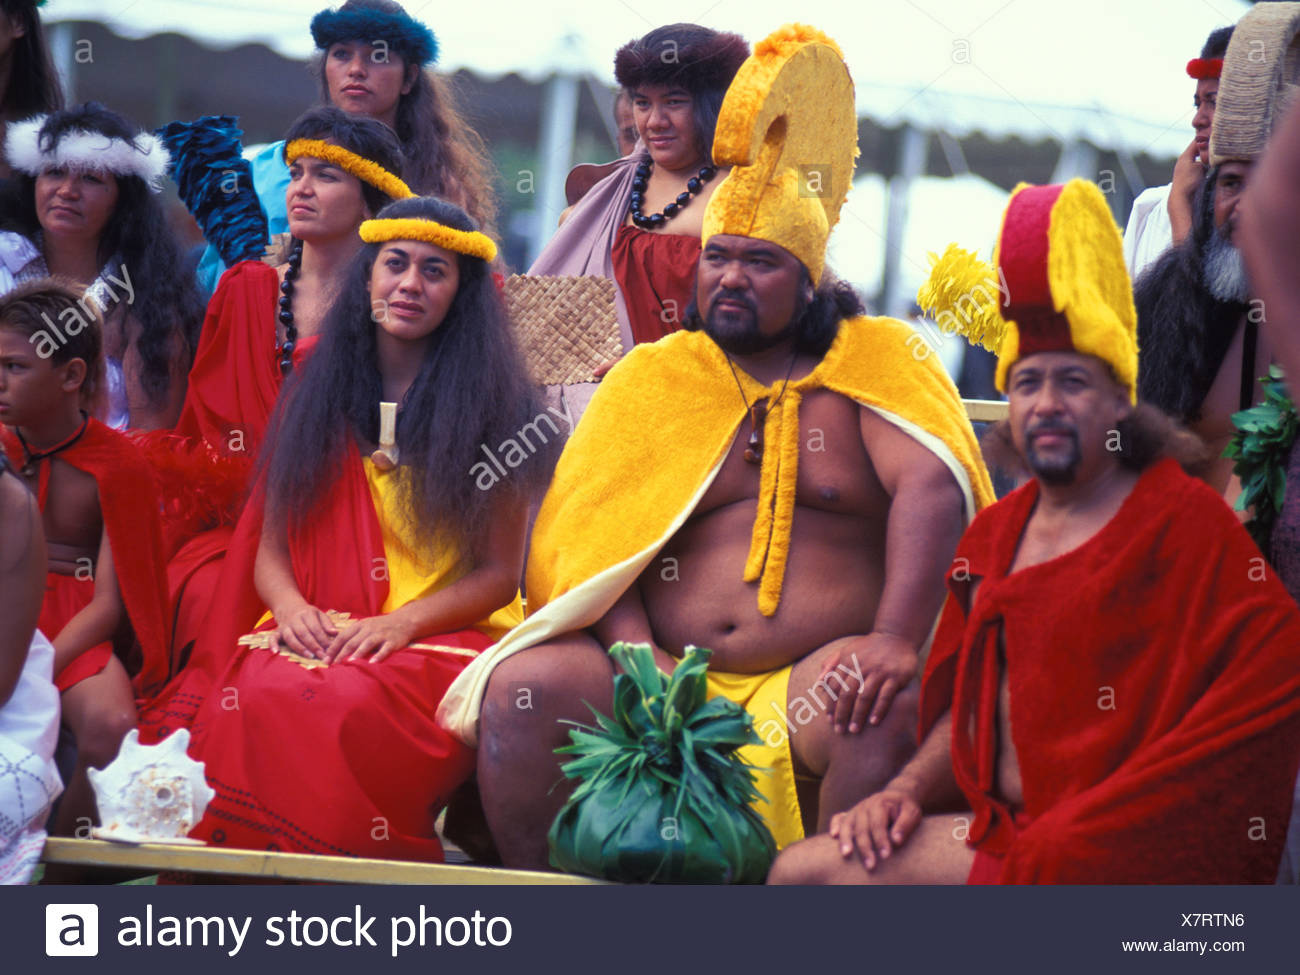 Aloha week festivities with the royal king and queen wearing capes with a puolo ti leaf offering - Stock Image